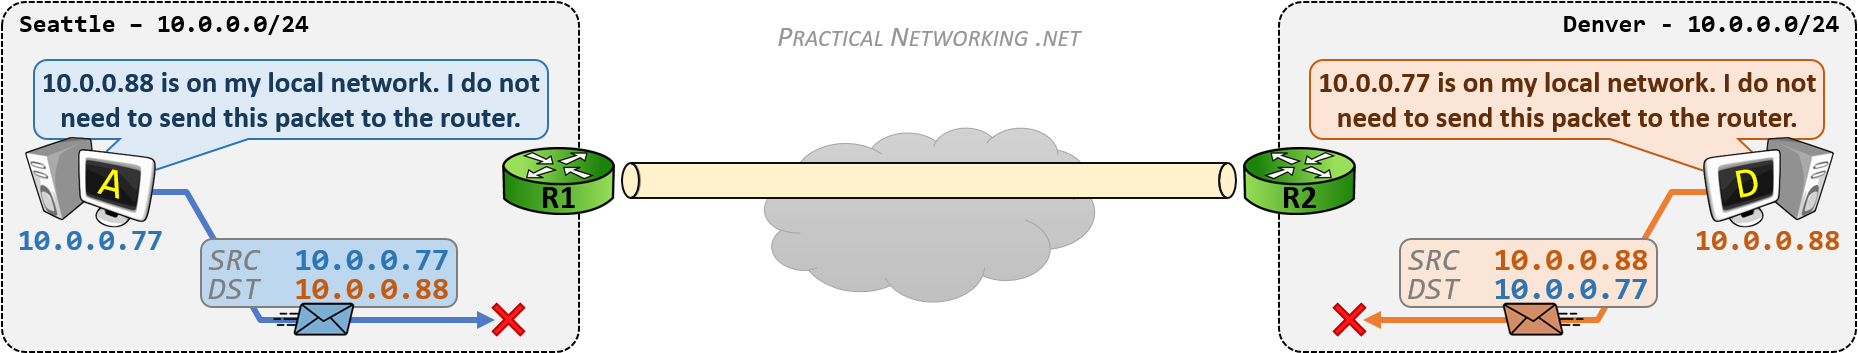 VPN Overlapping Networks - The Problem